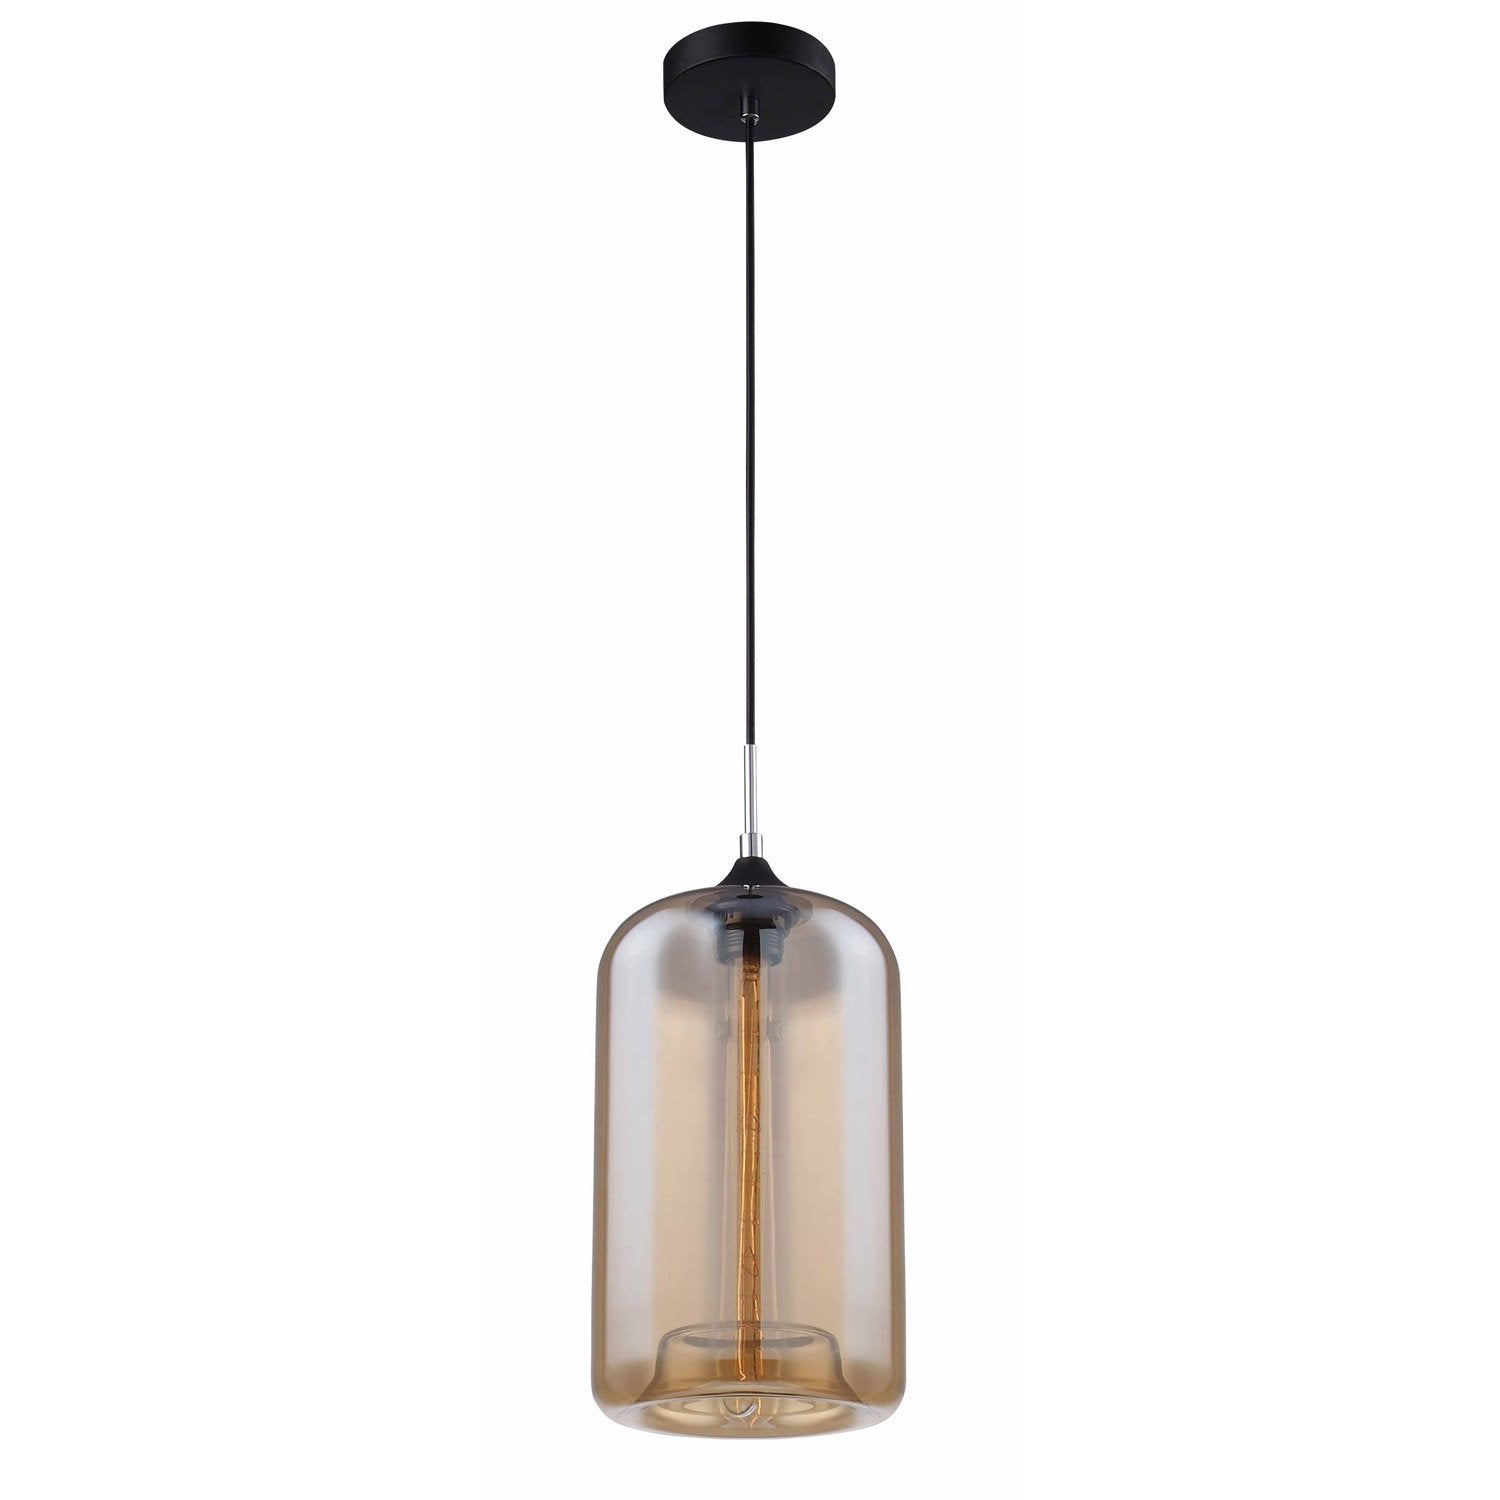 Suspension E27 Style Industriel Soho Verre Fum 1 X 40 W Lussiol Leroy Merlin